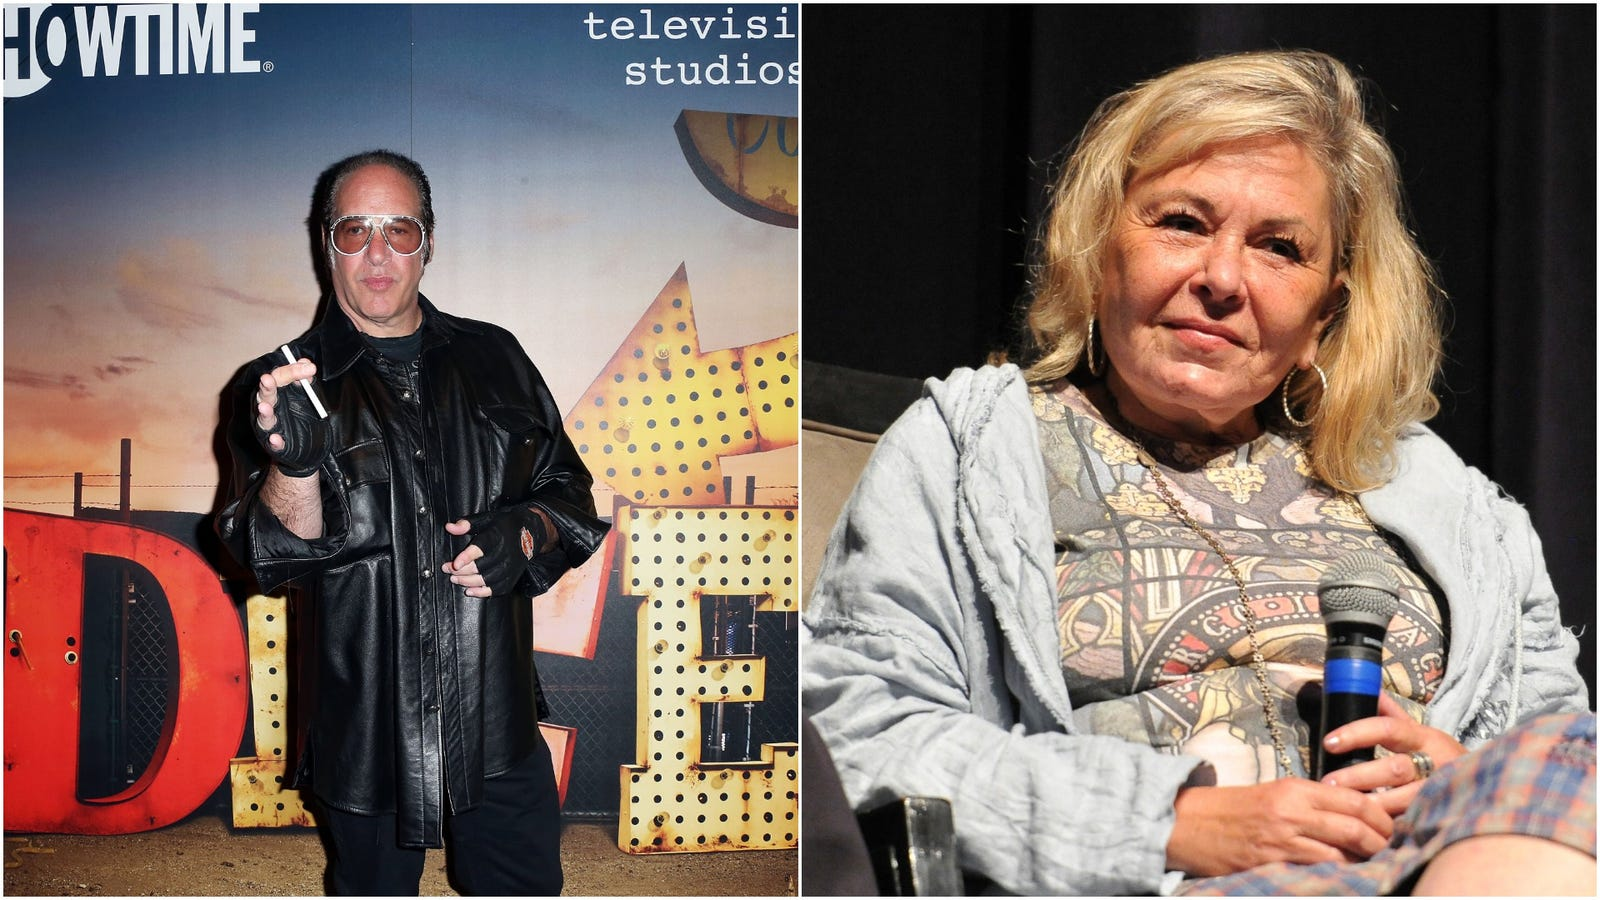 Roseanne Barr and Andrew Dice Clay announce new comedy tour, answering nobody's prayers